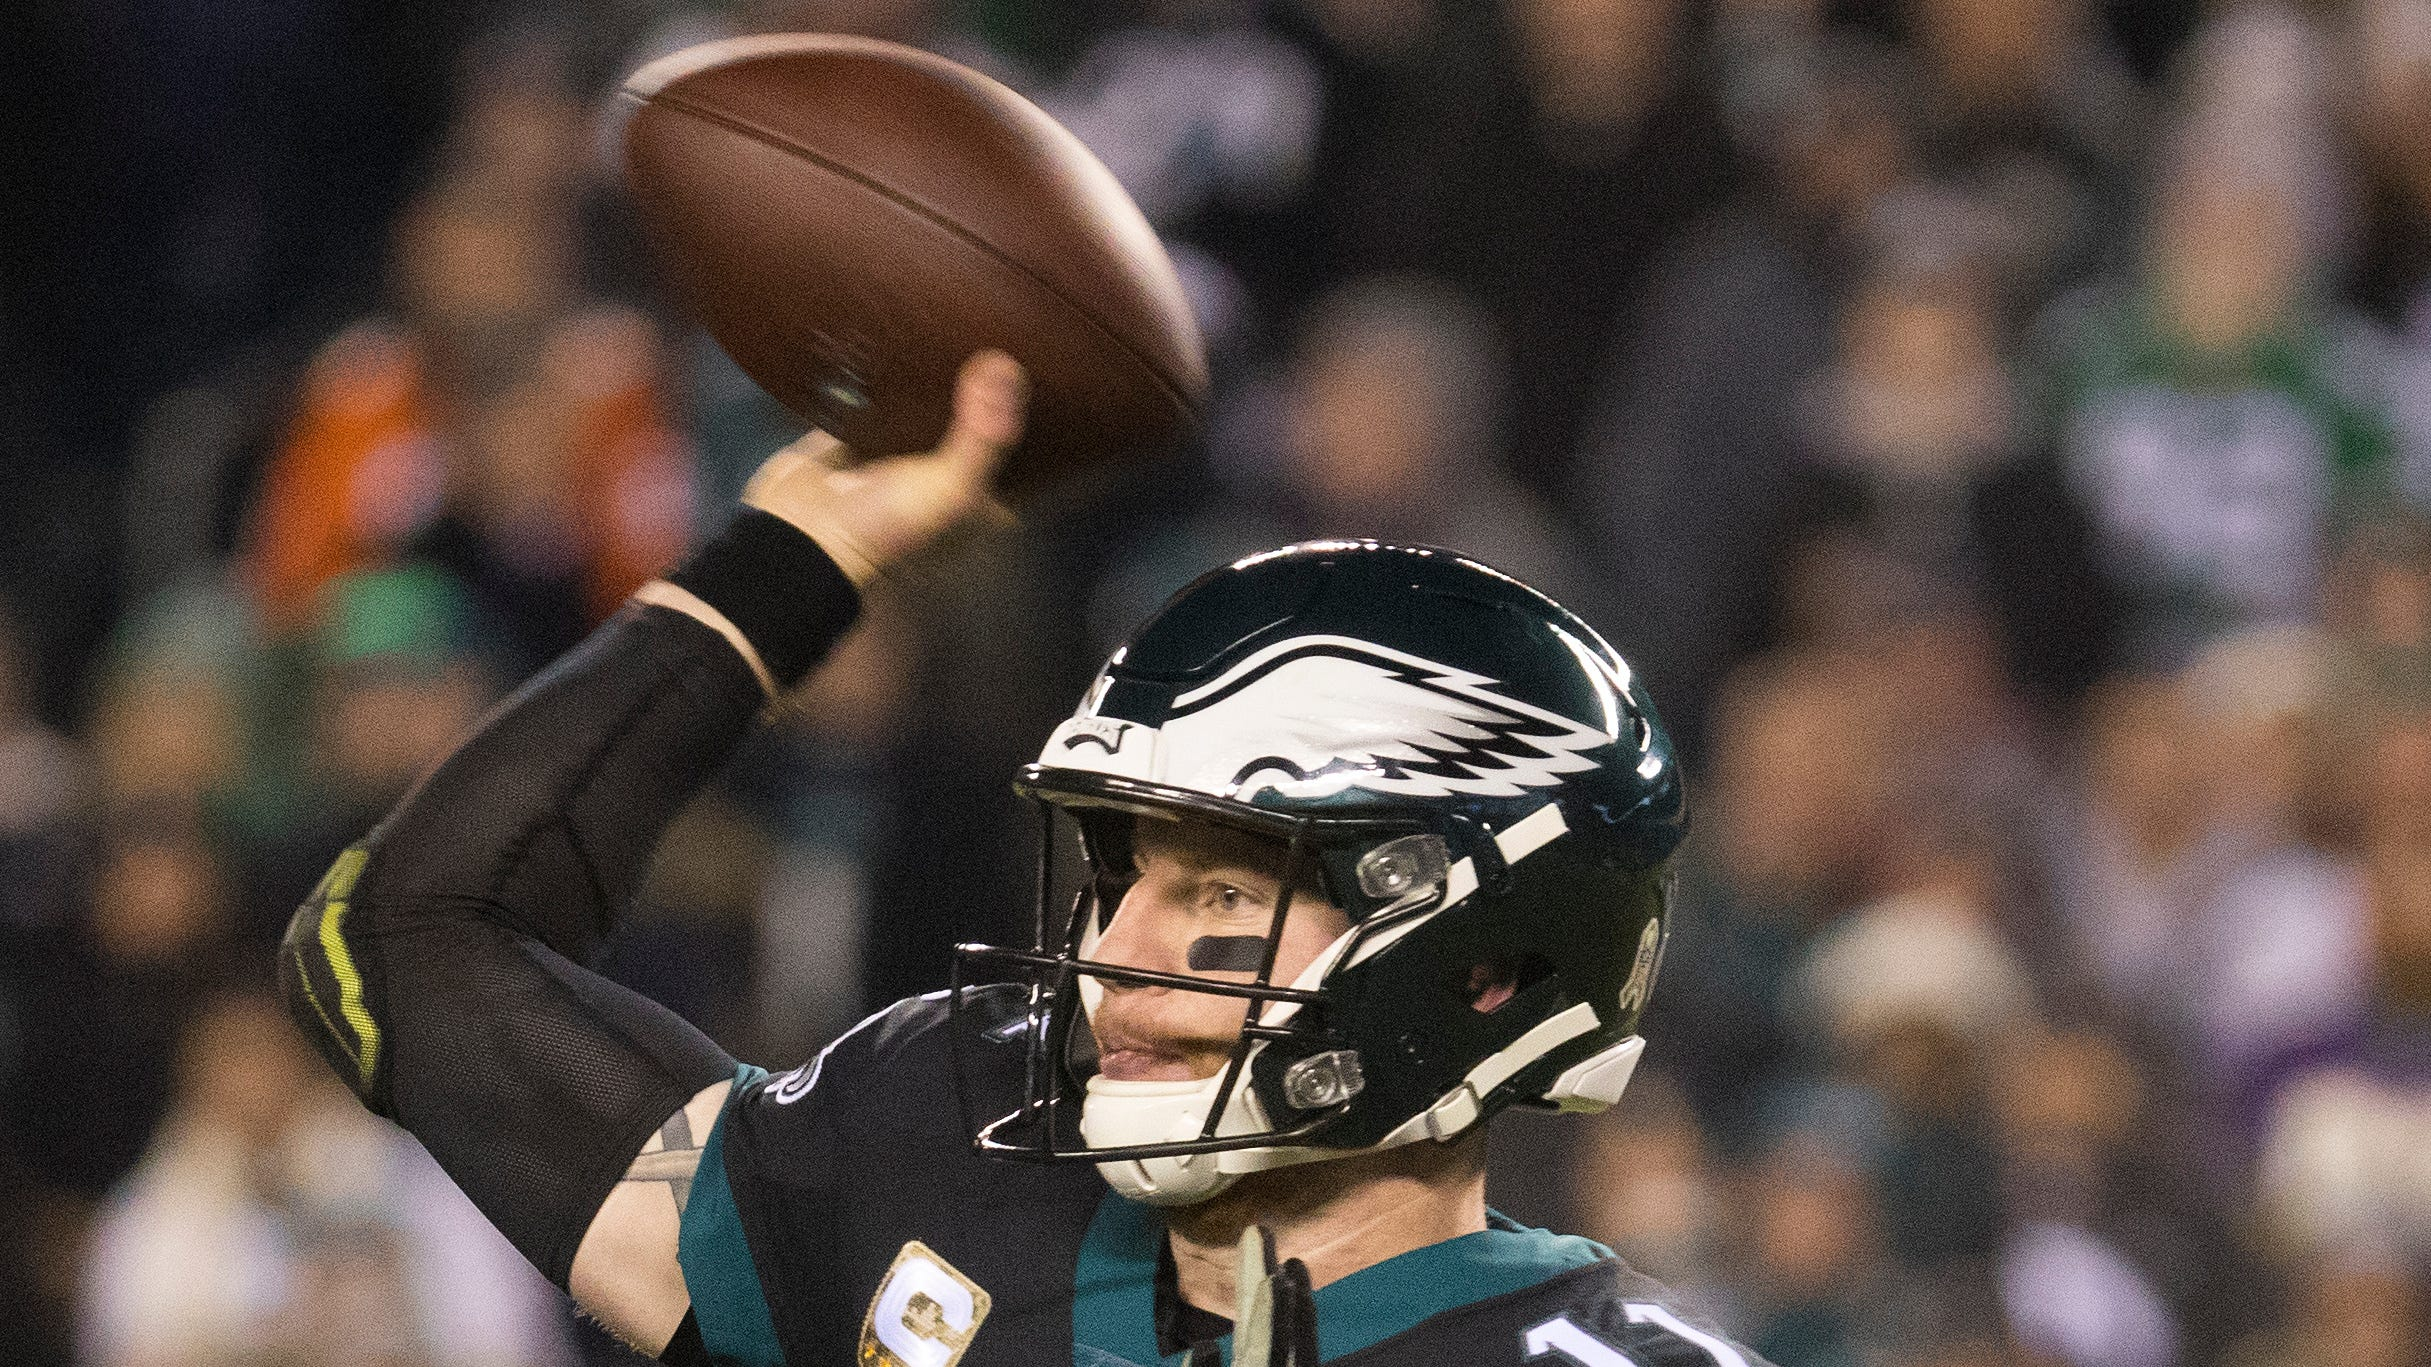 Eagles' free agency plan, even at running back, is all about Carson Wentz